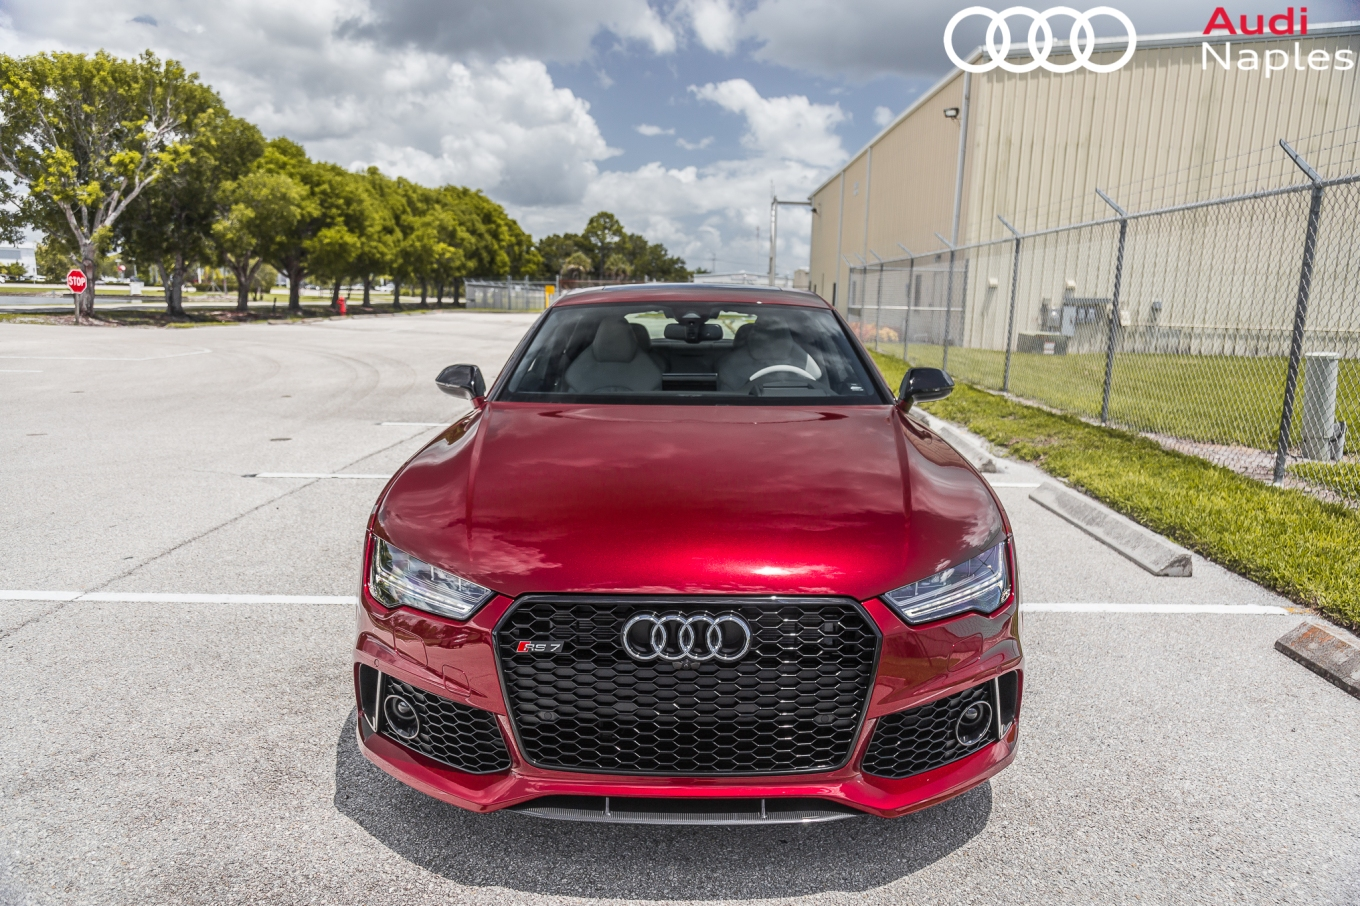 Audi Exclusive RS In Rubino Red Advanced Automotive Accessories - Audi naples